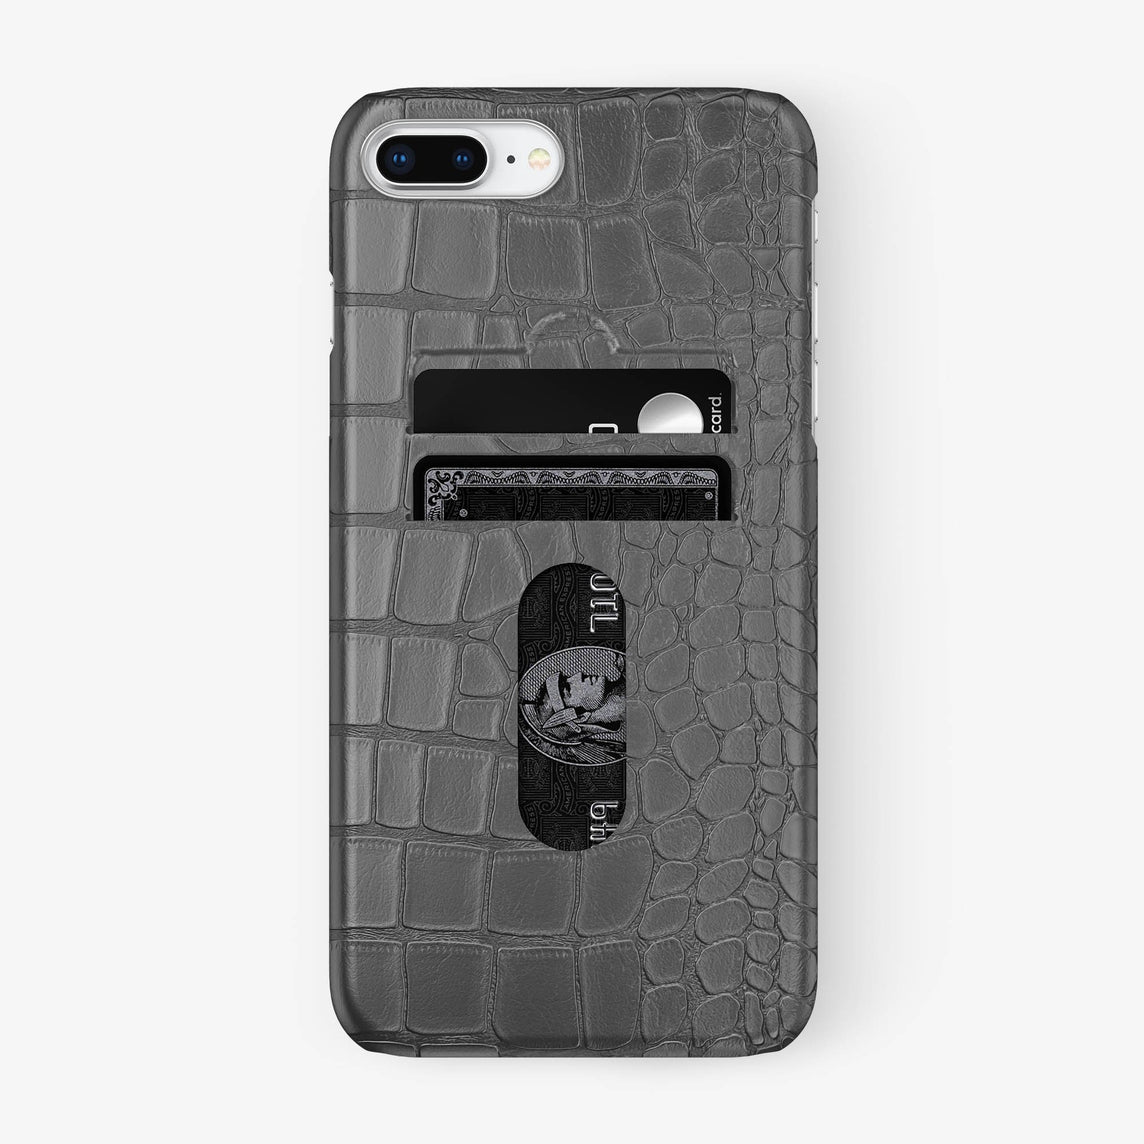 Alligator Card Holder Case iPhone 7/8 Plus | Grey - Stainless Steel